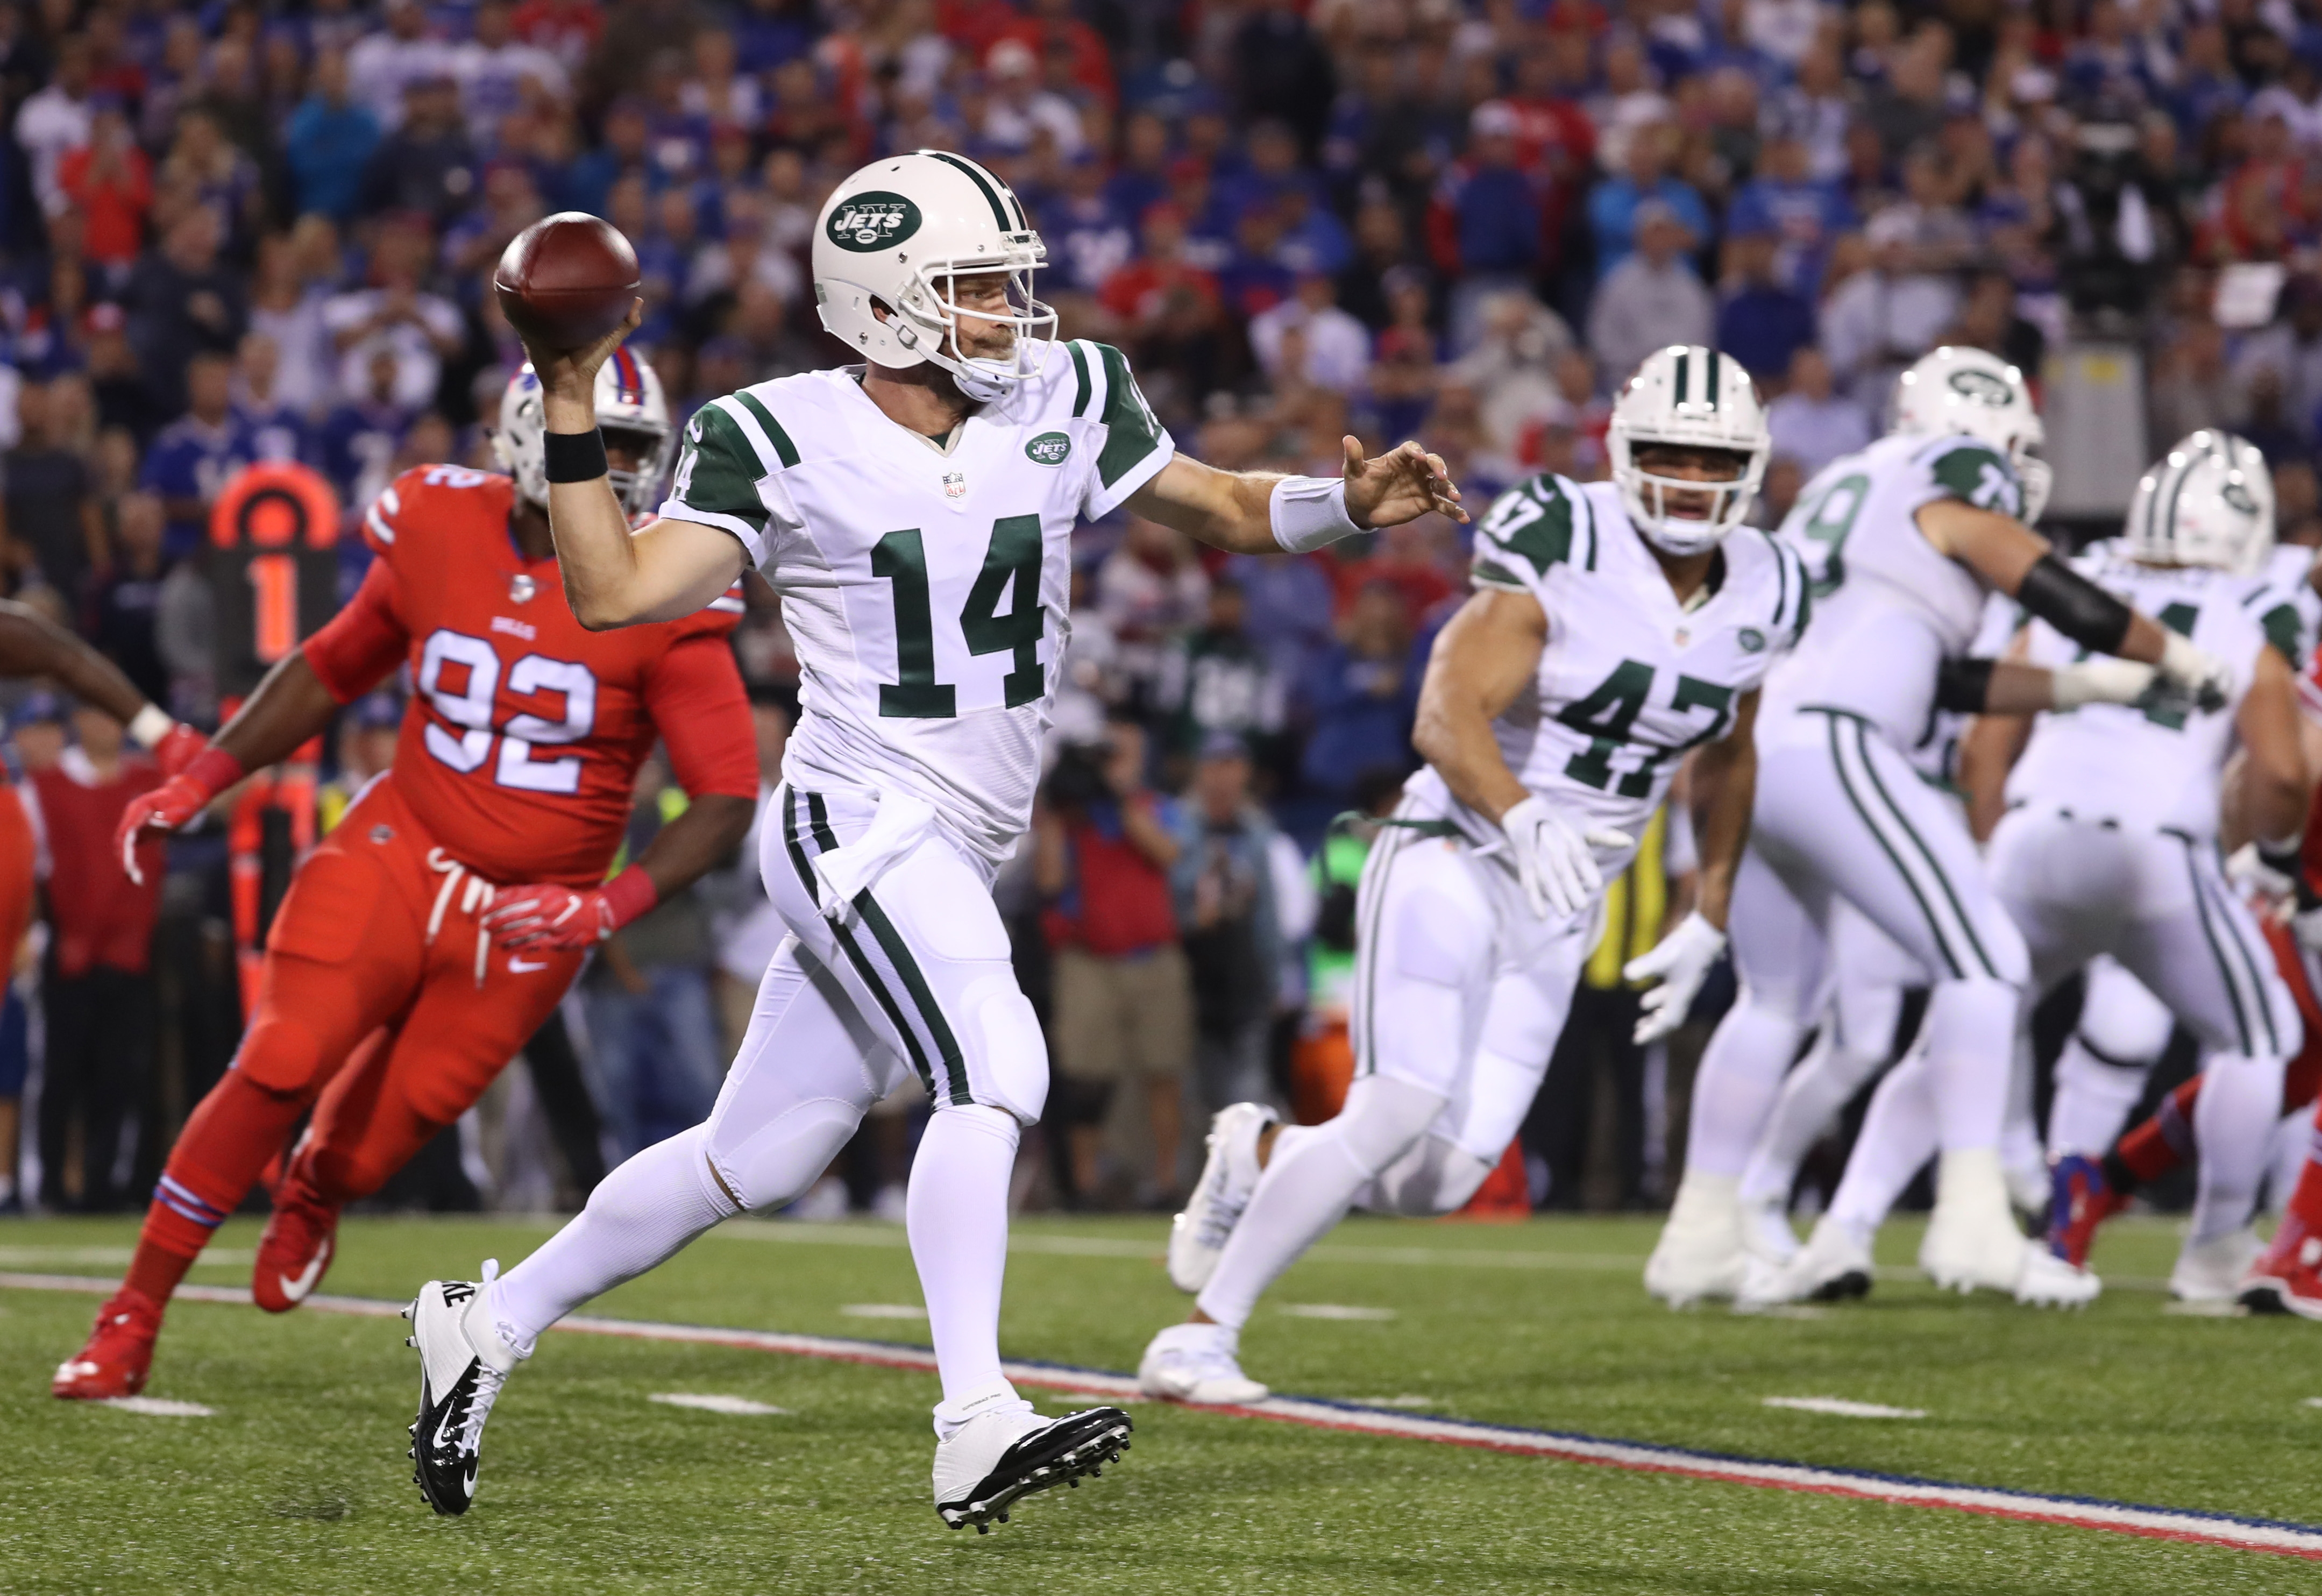 Jets quarterback Ryan Fitzpatrick (14) , who came into the game with a 1-8 career record against Rex Ryan's defenses, redeemed himself with a sensational passing performance in the Jets' 37-31 victory. (James P. McCoy/Buffalo News)